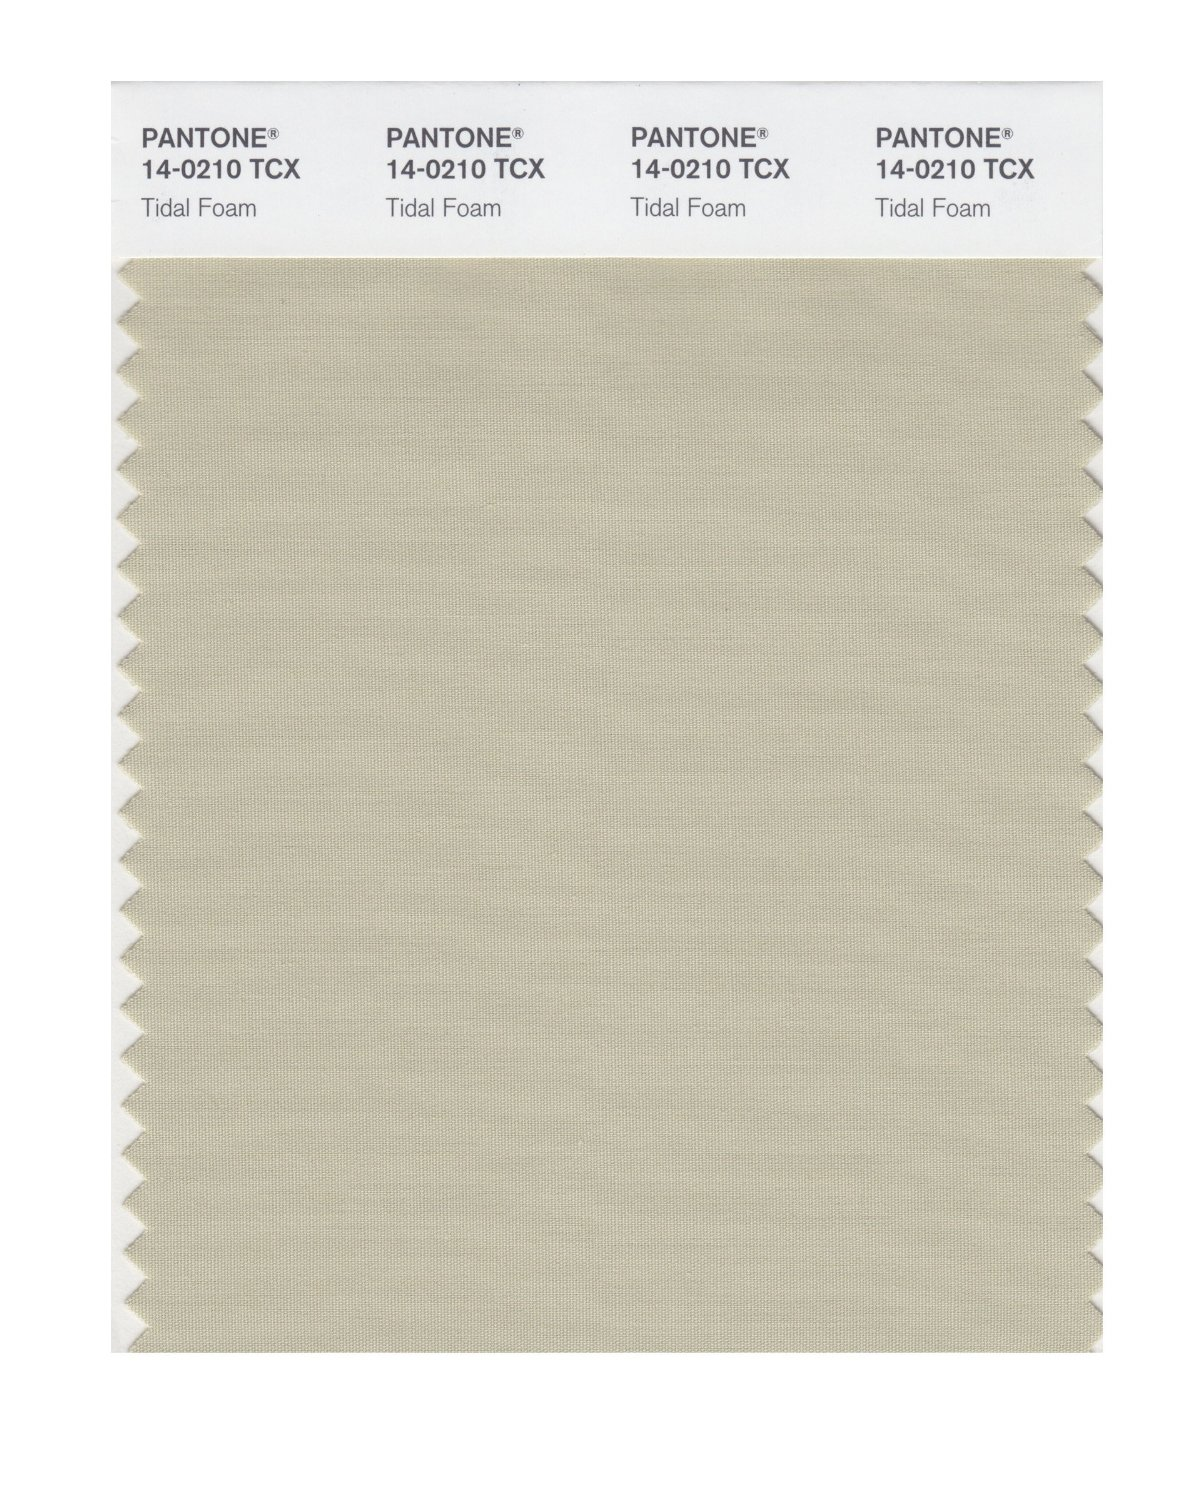 Pantone Smart Swatch 14-0210 Tidal Foam